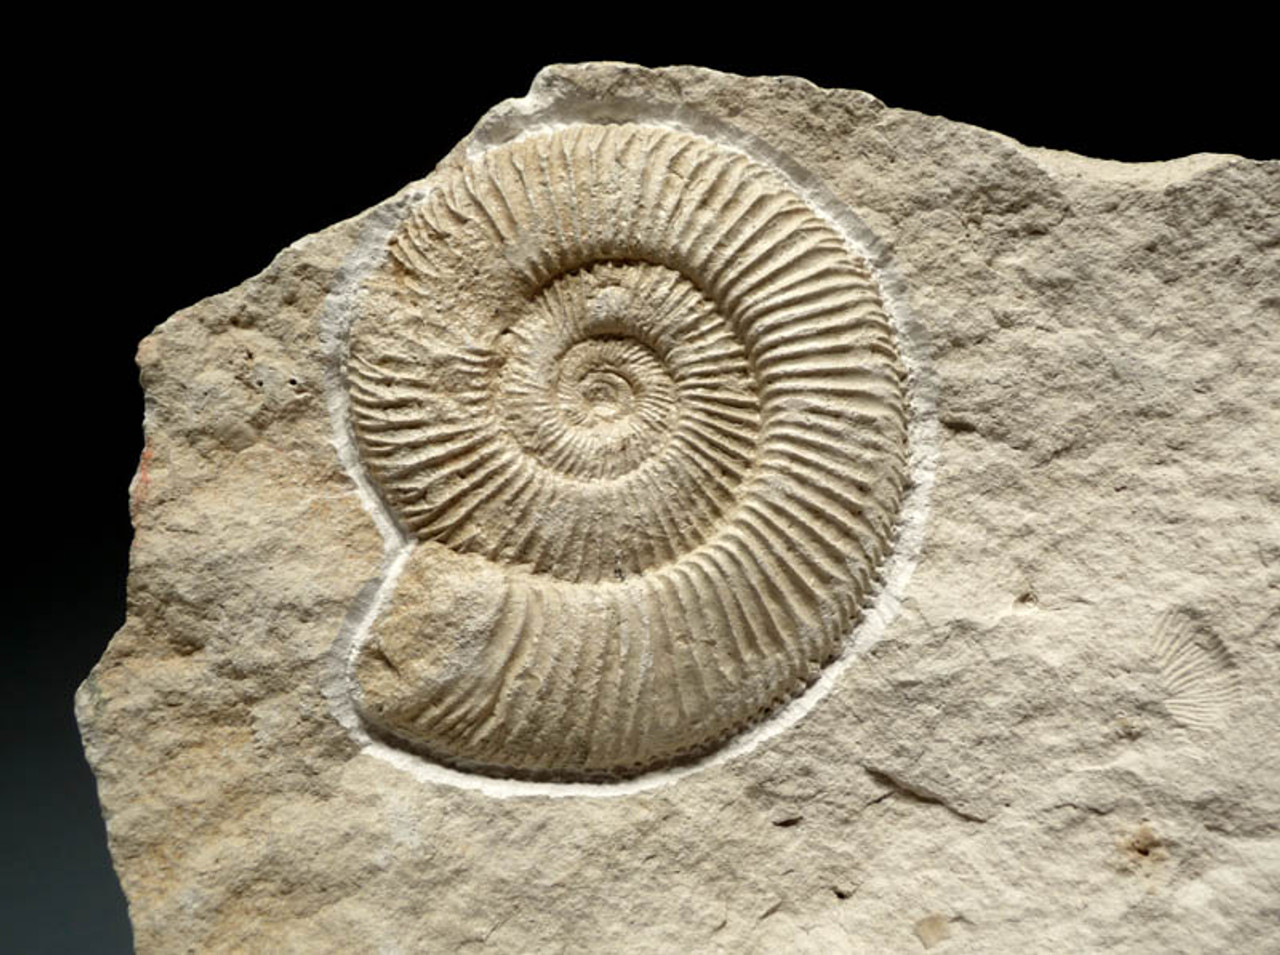 LARGE DOUBLE JURASSIC WHITE AMMONITES ON MATCHING WHITE LIMESTONE MATRIX FROM EASTERN EUROPE *AMX223